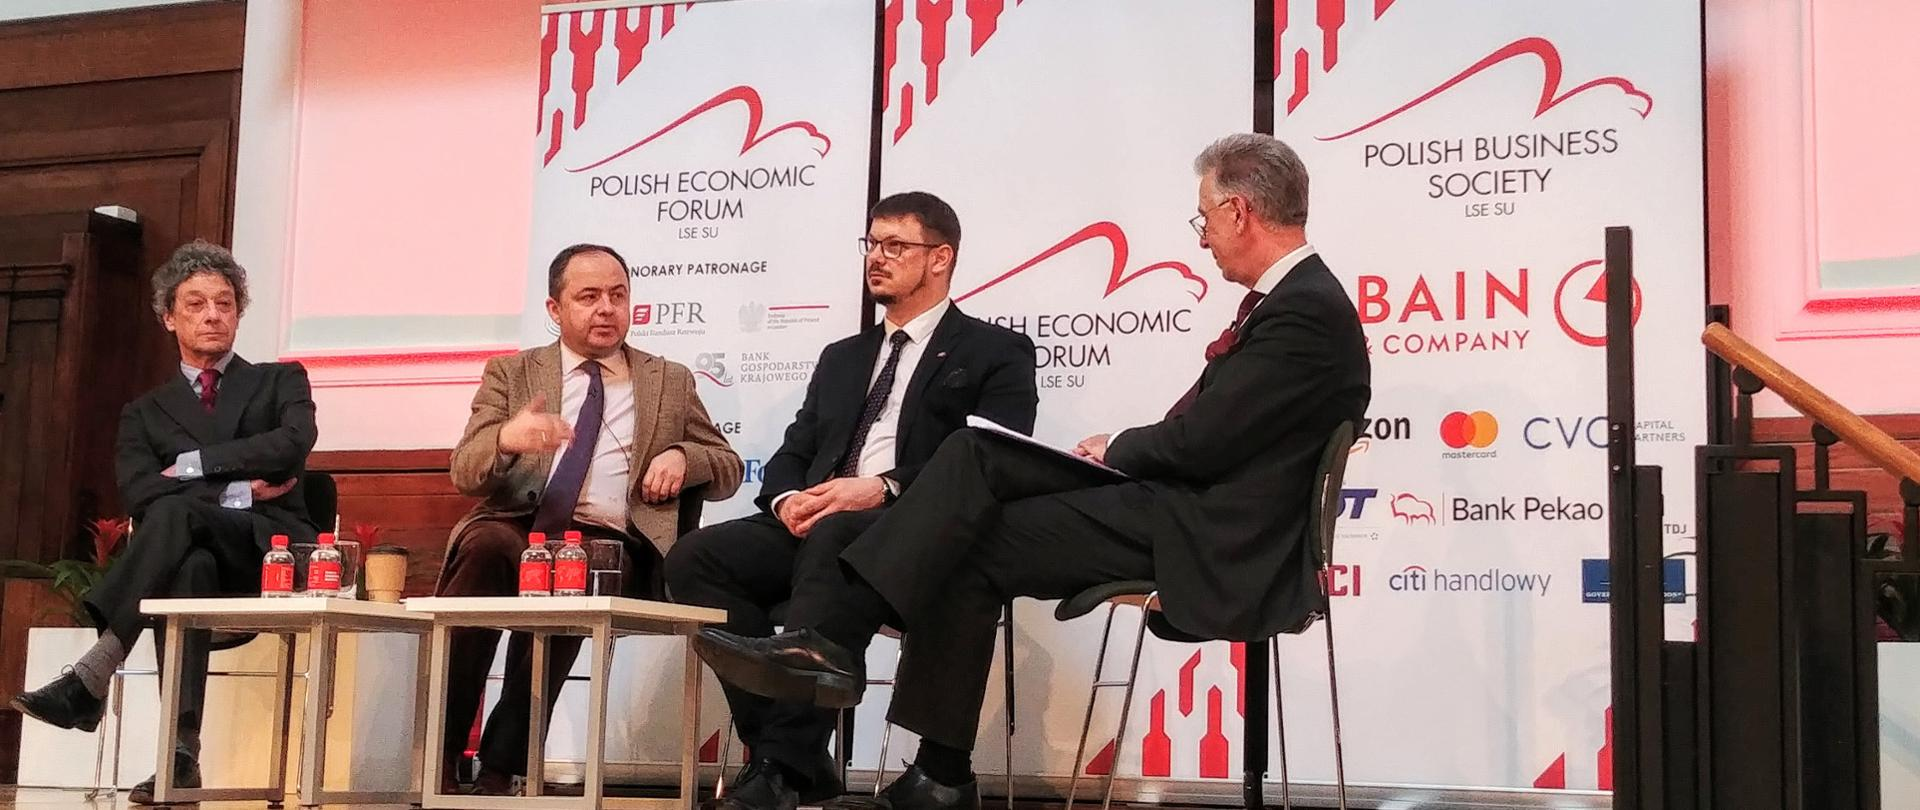 Deputy Minister Konrad Szymański attends LSE Polish Economic Forum in London